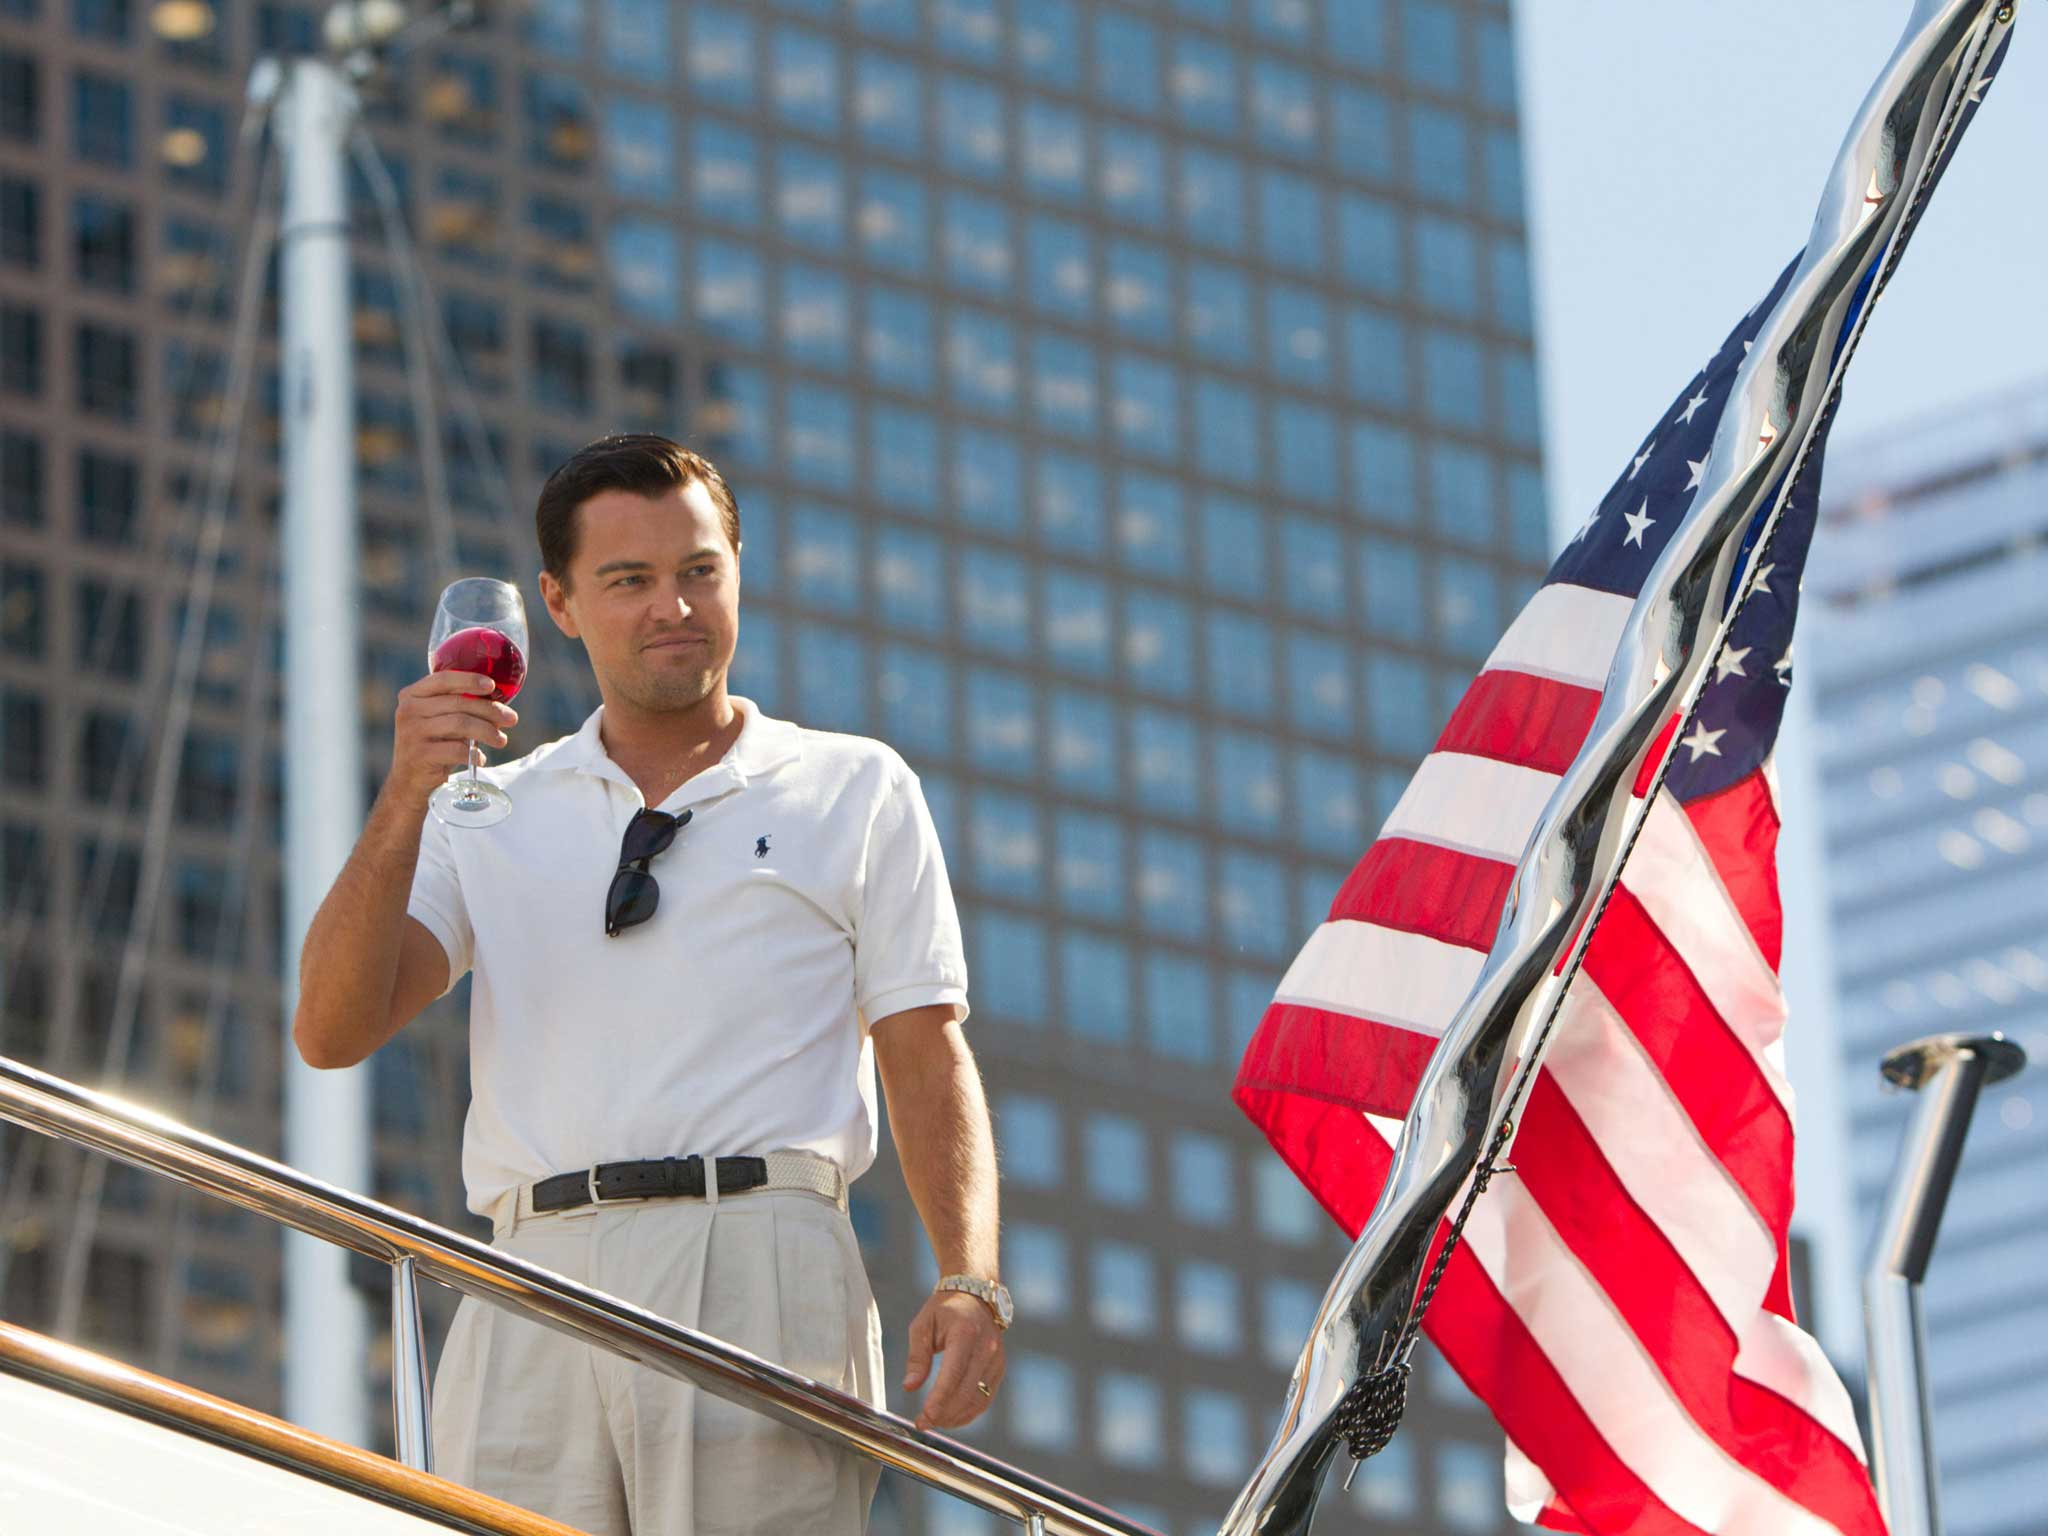 13 habits of self-made millionaires, from a man who spent 5 years studying rich people